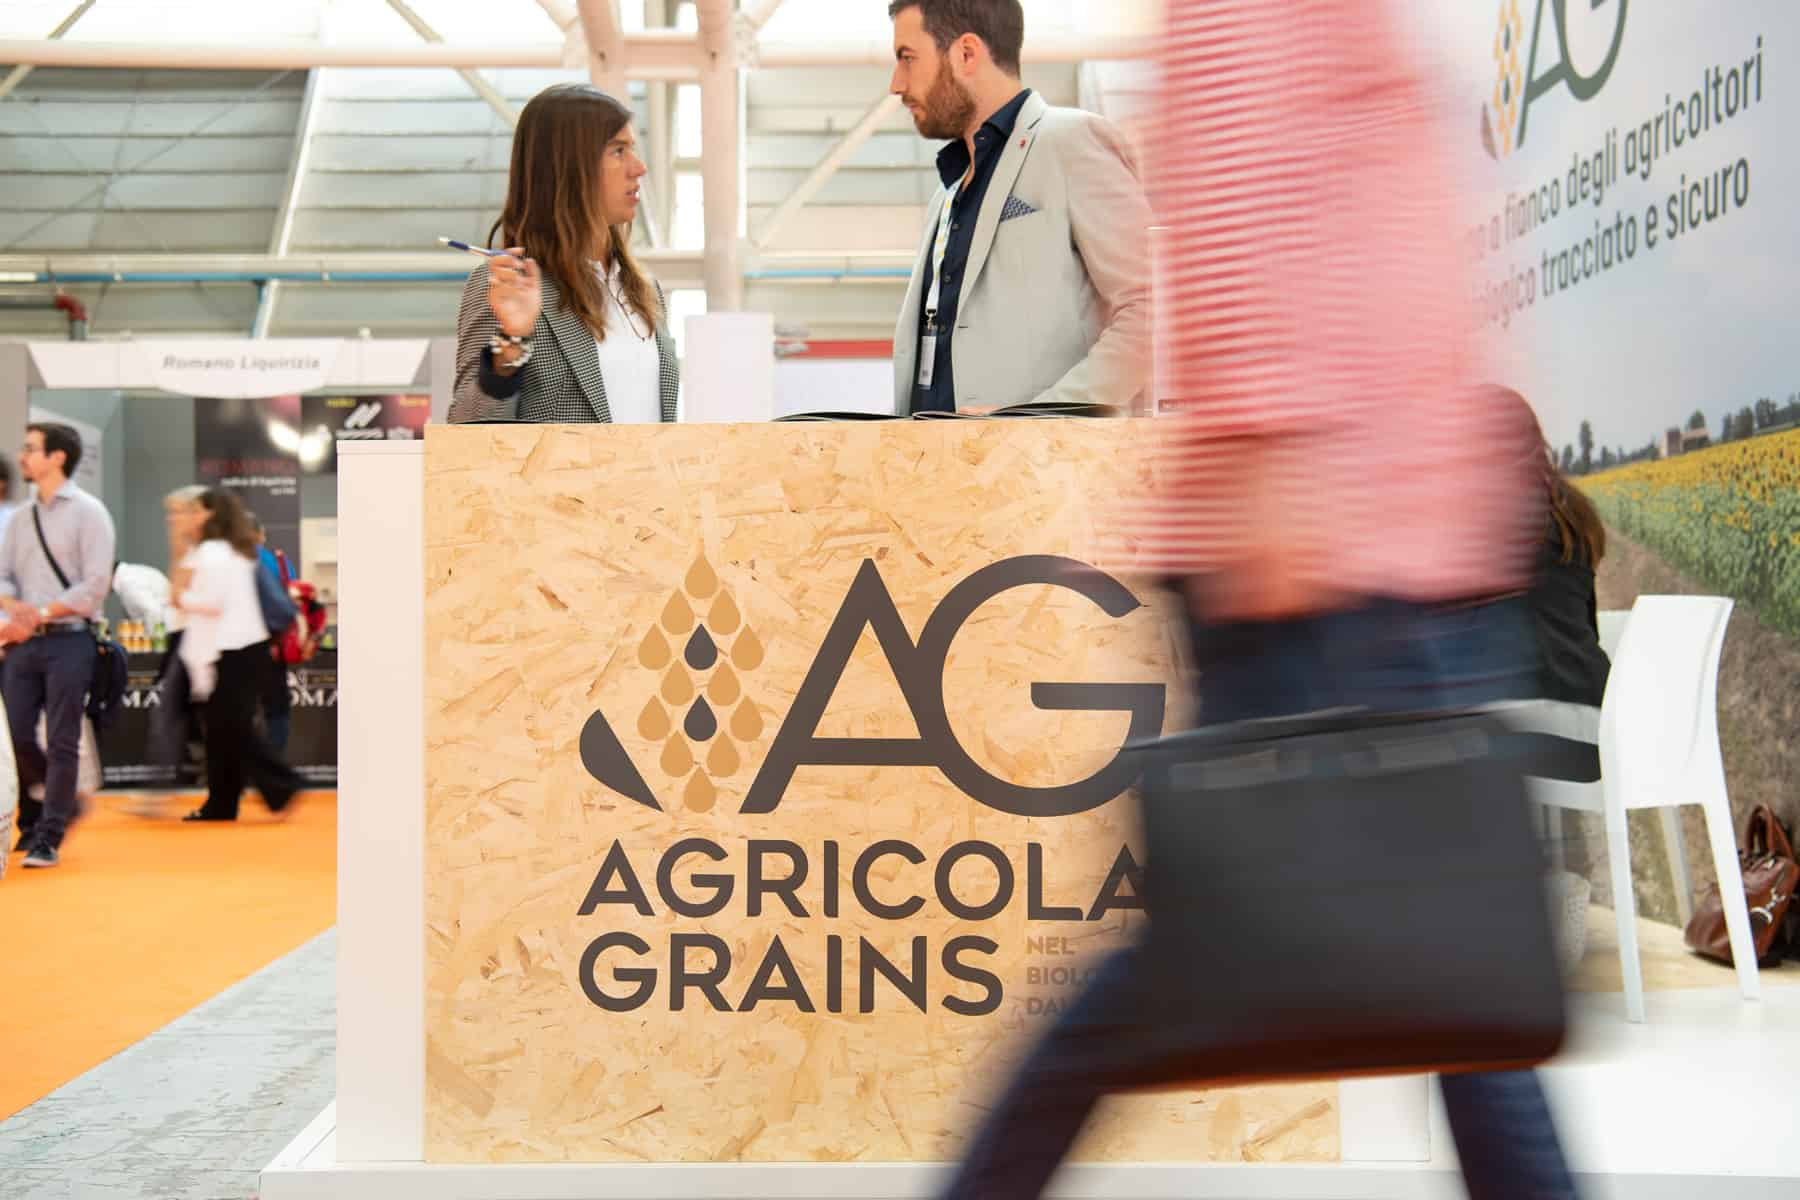 Agricola grains fiere bio (2)